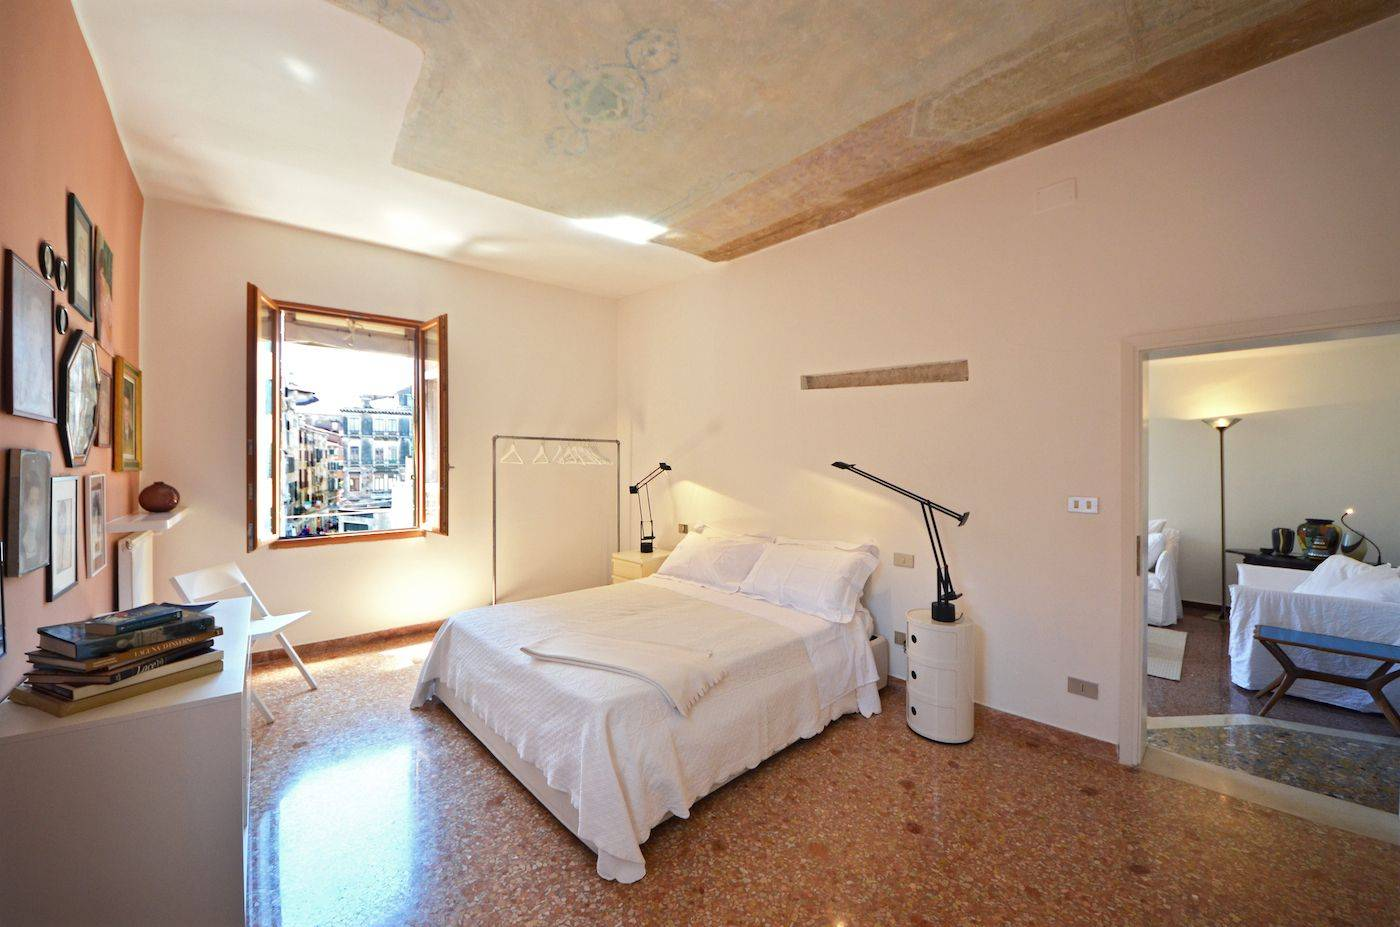 spacious master bedroom with view